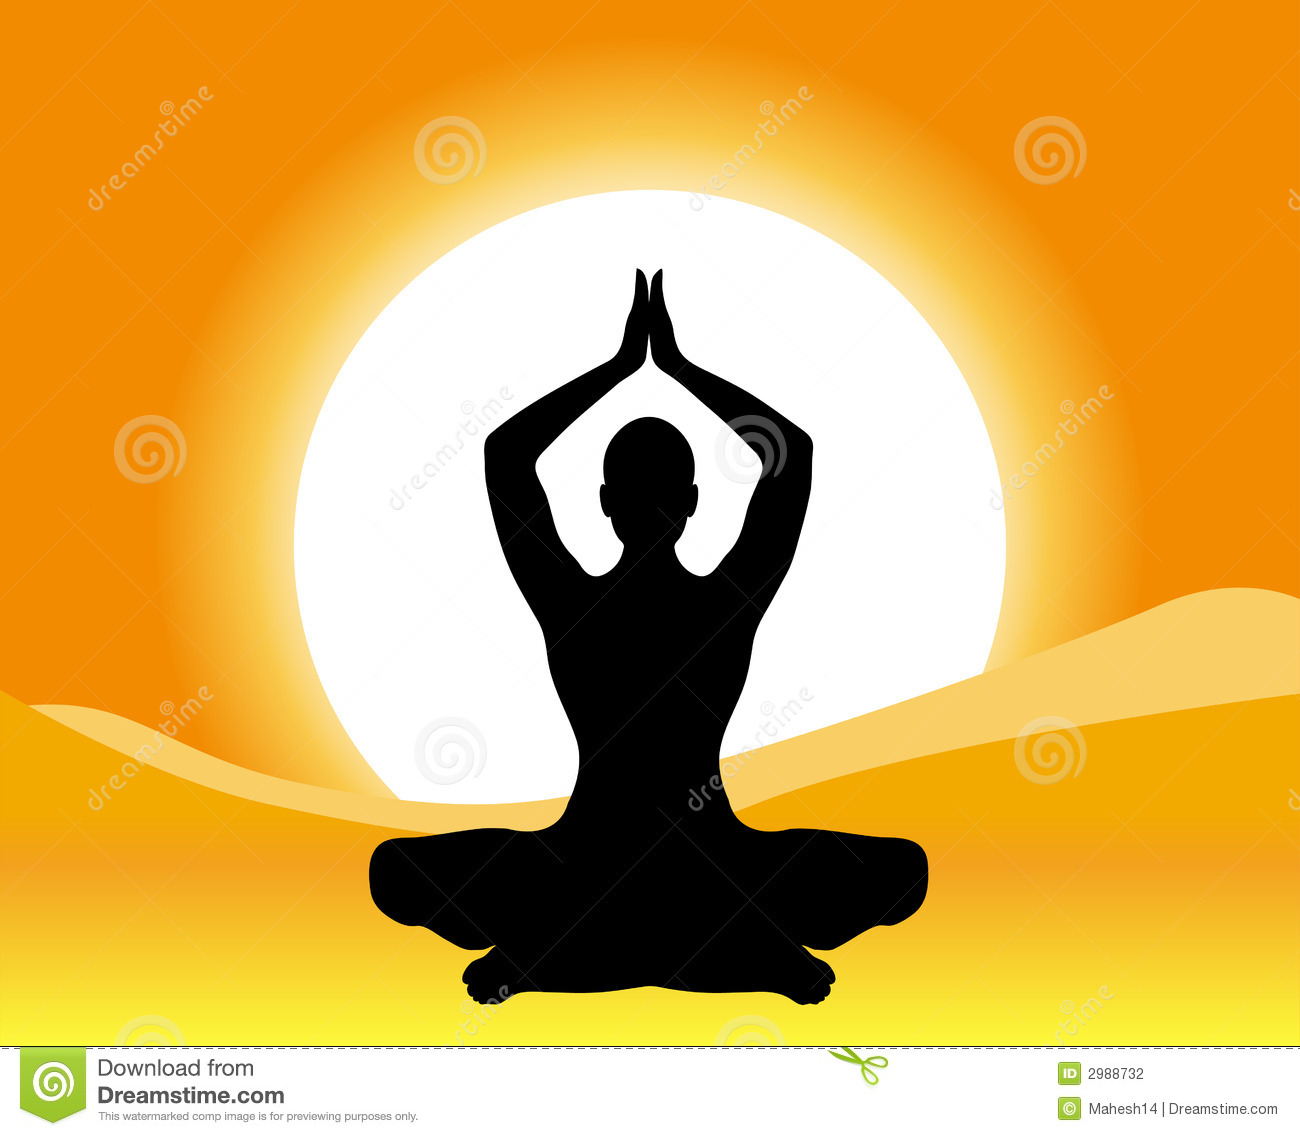 transparent download Meditation clipart yoga exercise. Collection of free fluctuability.